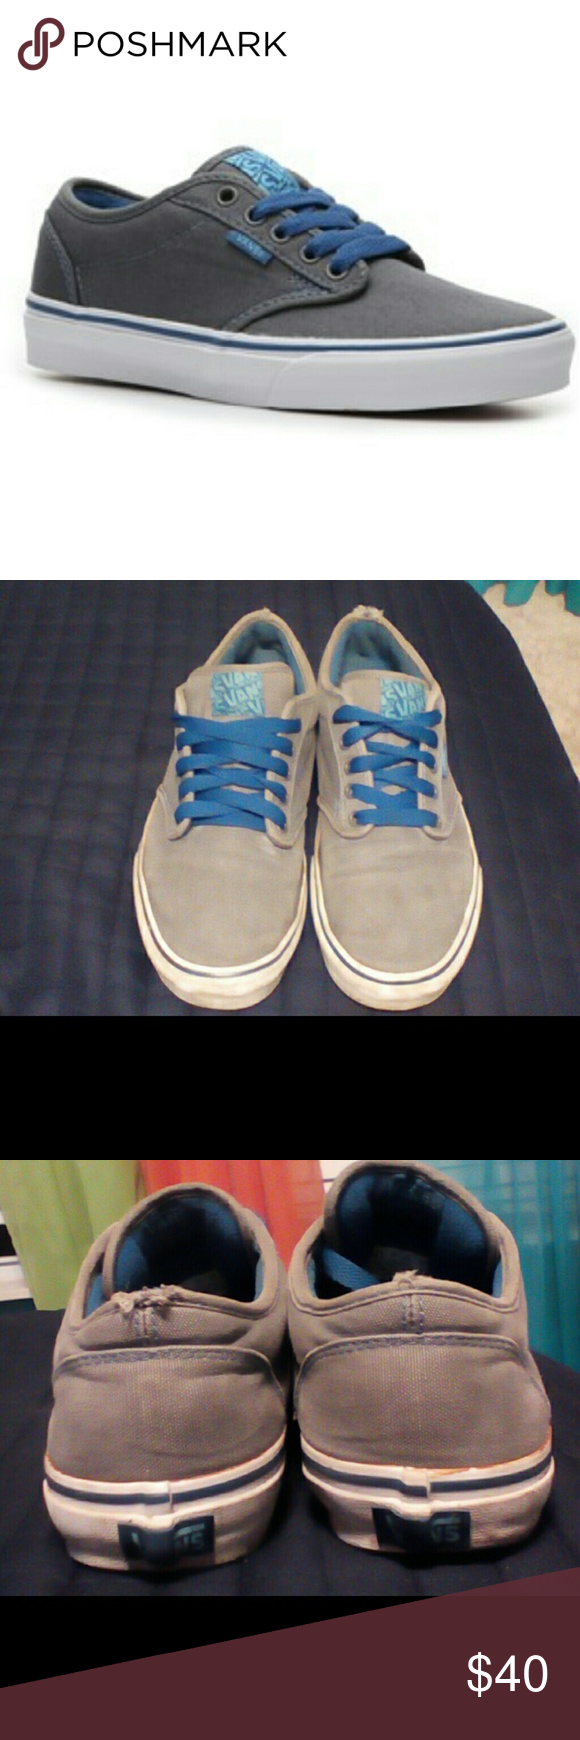 3e656a5d72 UNISEX Grey and blue Vans  100% Authentic Vans  Men or Womens  Grey with Blue  Laces  Good Condition  Only wear is on the back just from putting them on  and ...